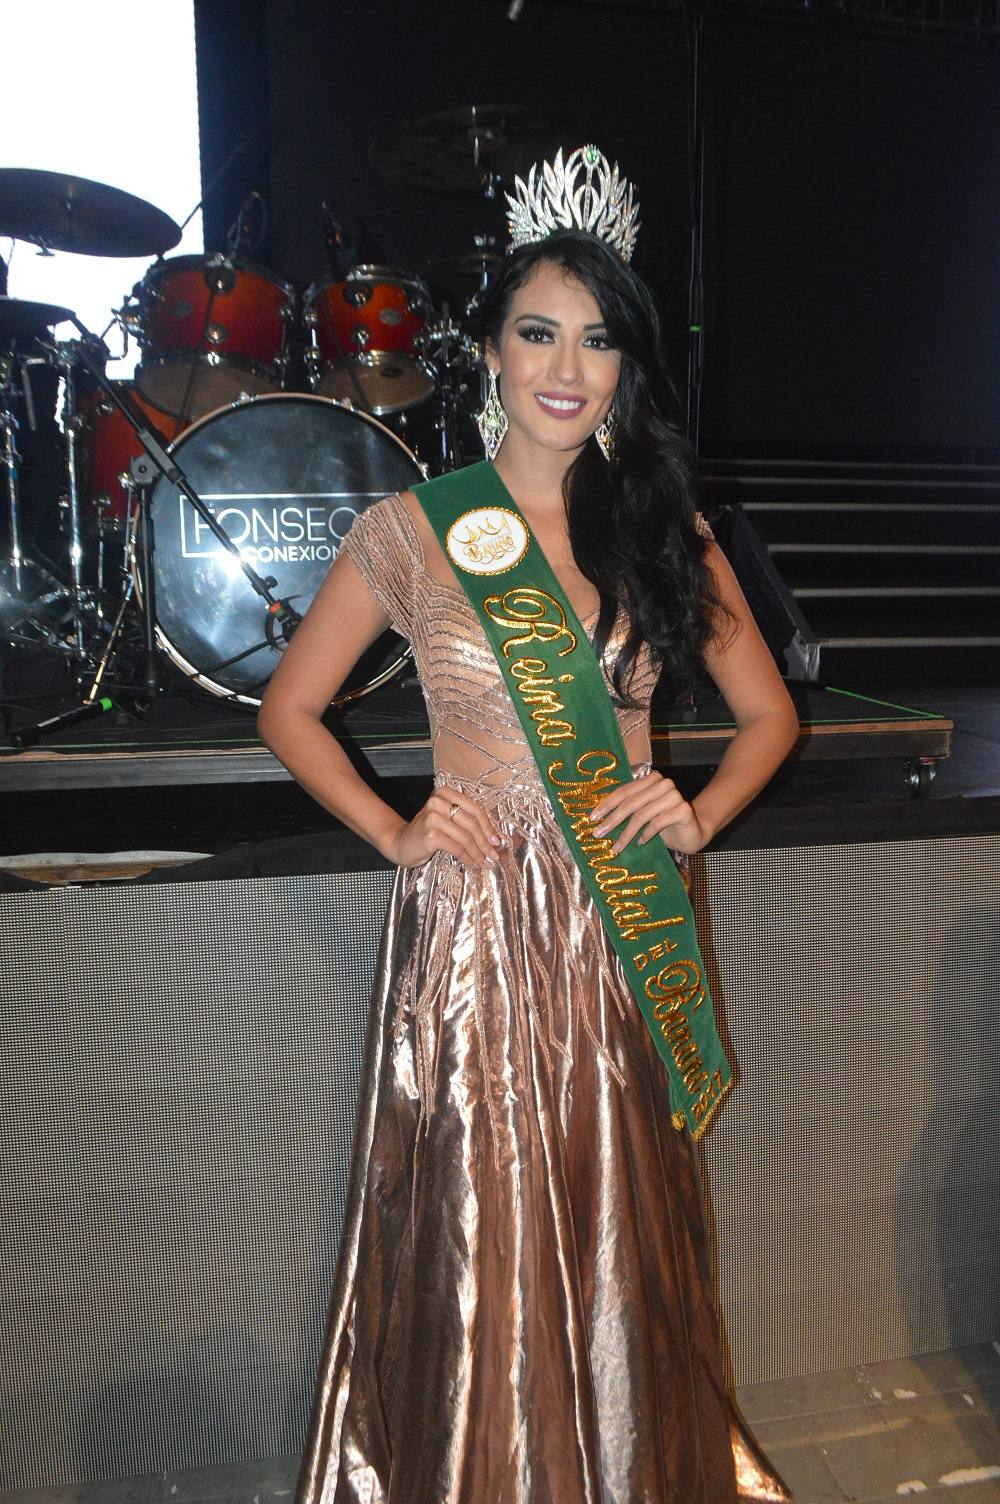 yenny katherine carrillo, top 20 de miss earth 2019/reyna mundial banano 2017. Reina-10